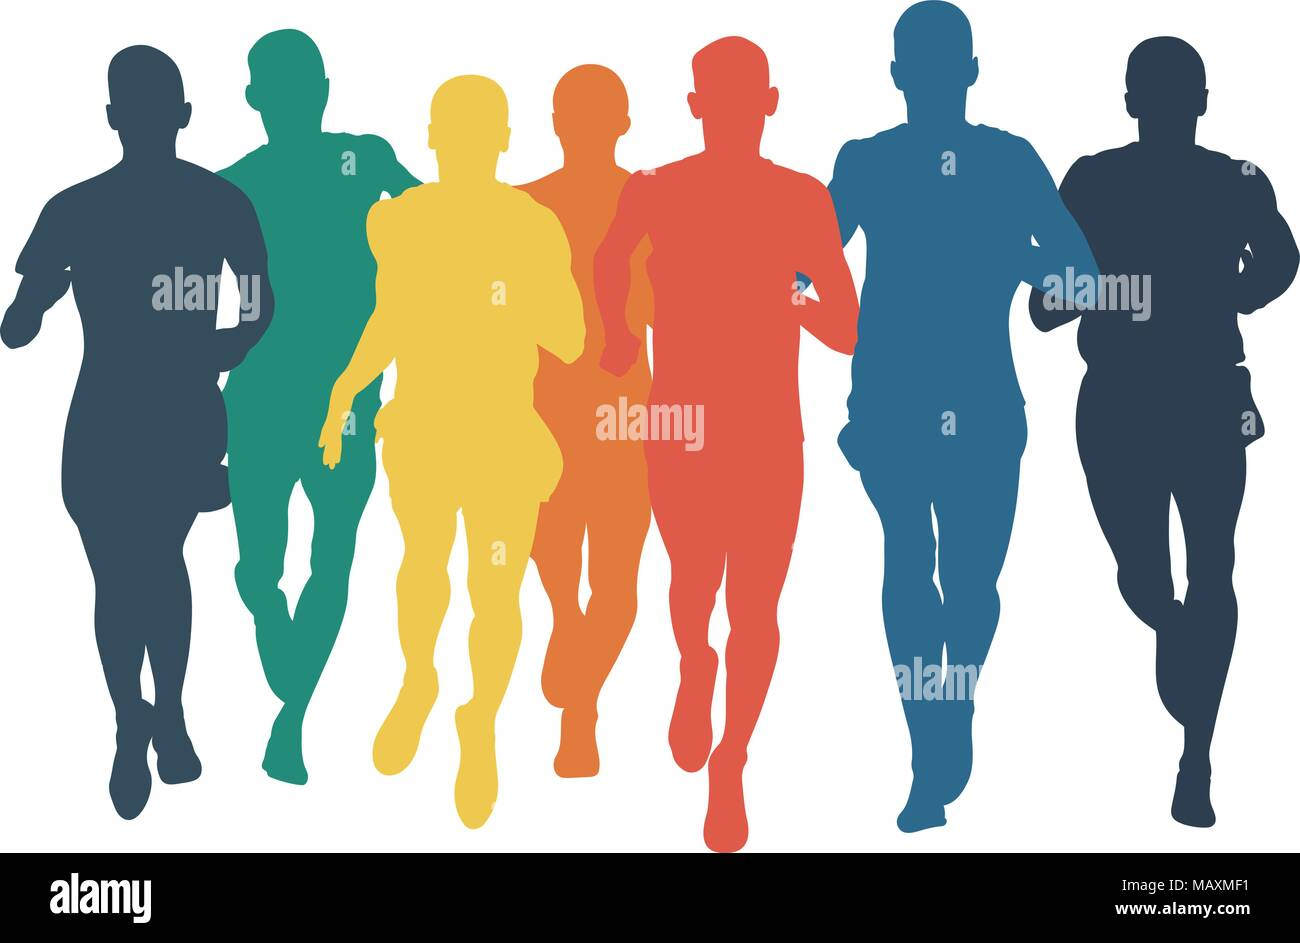 group runners men run colored silhouettes in flat design style - Stock Vector